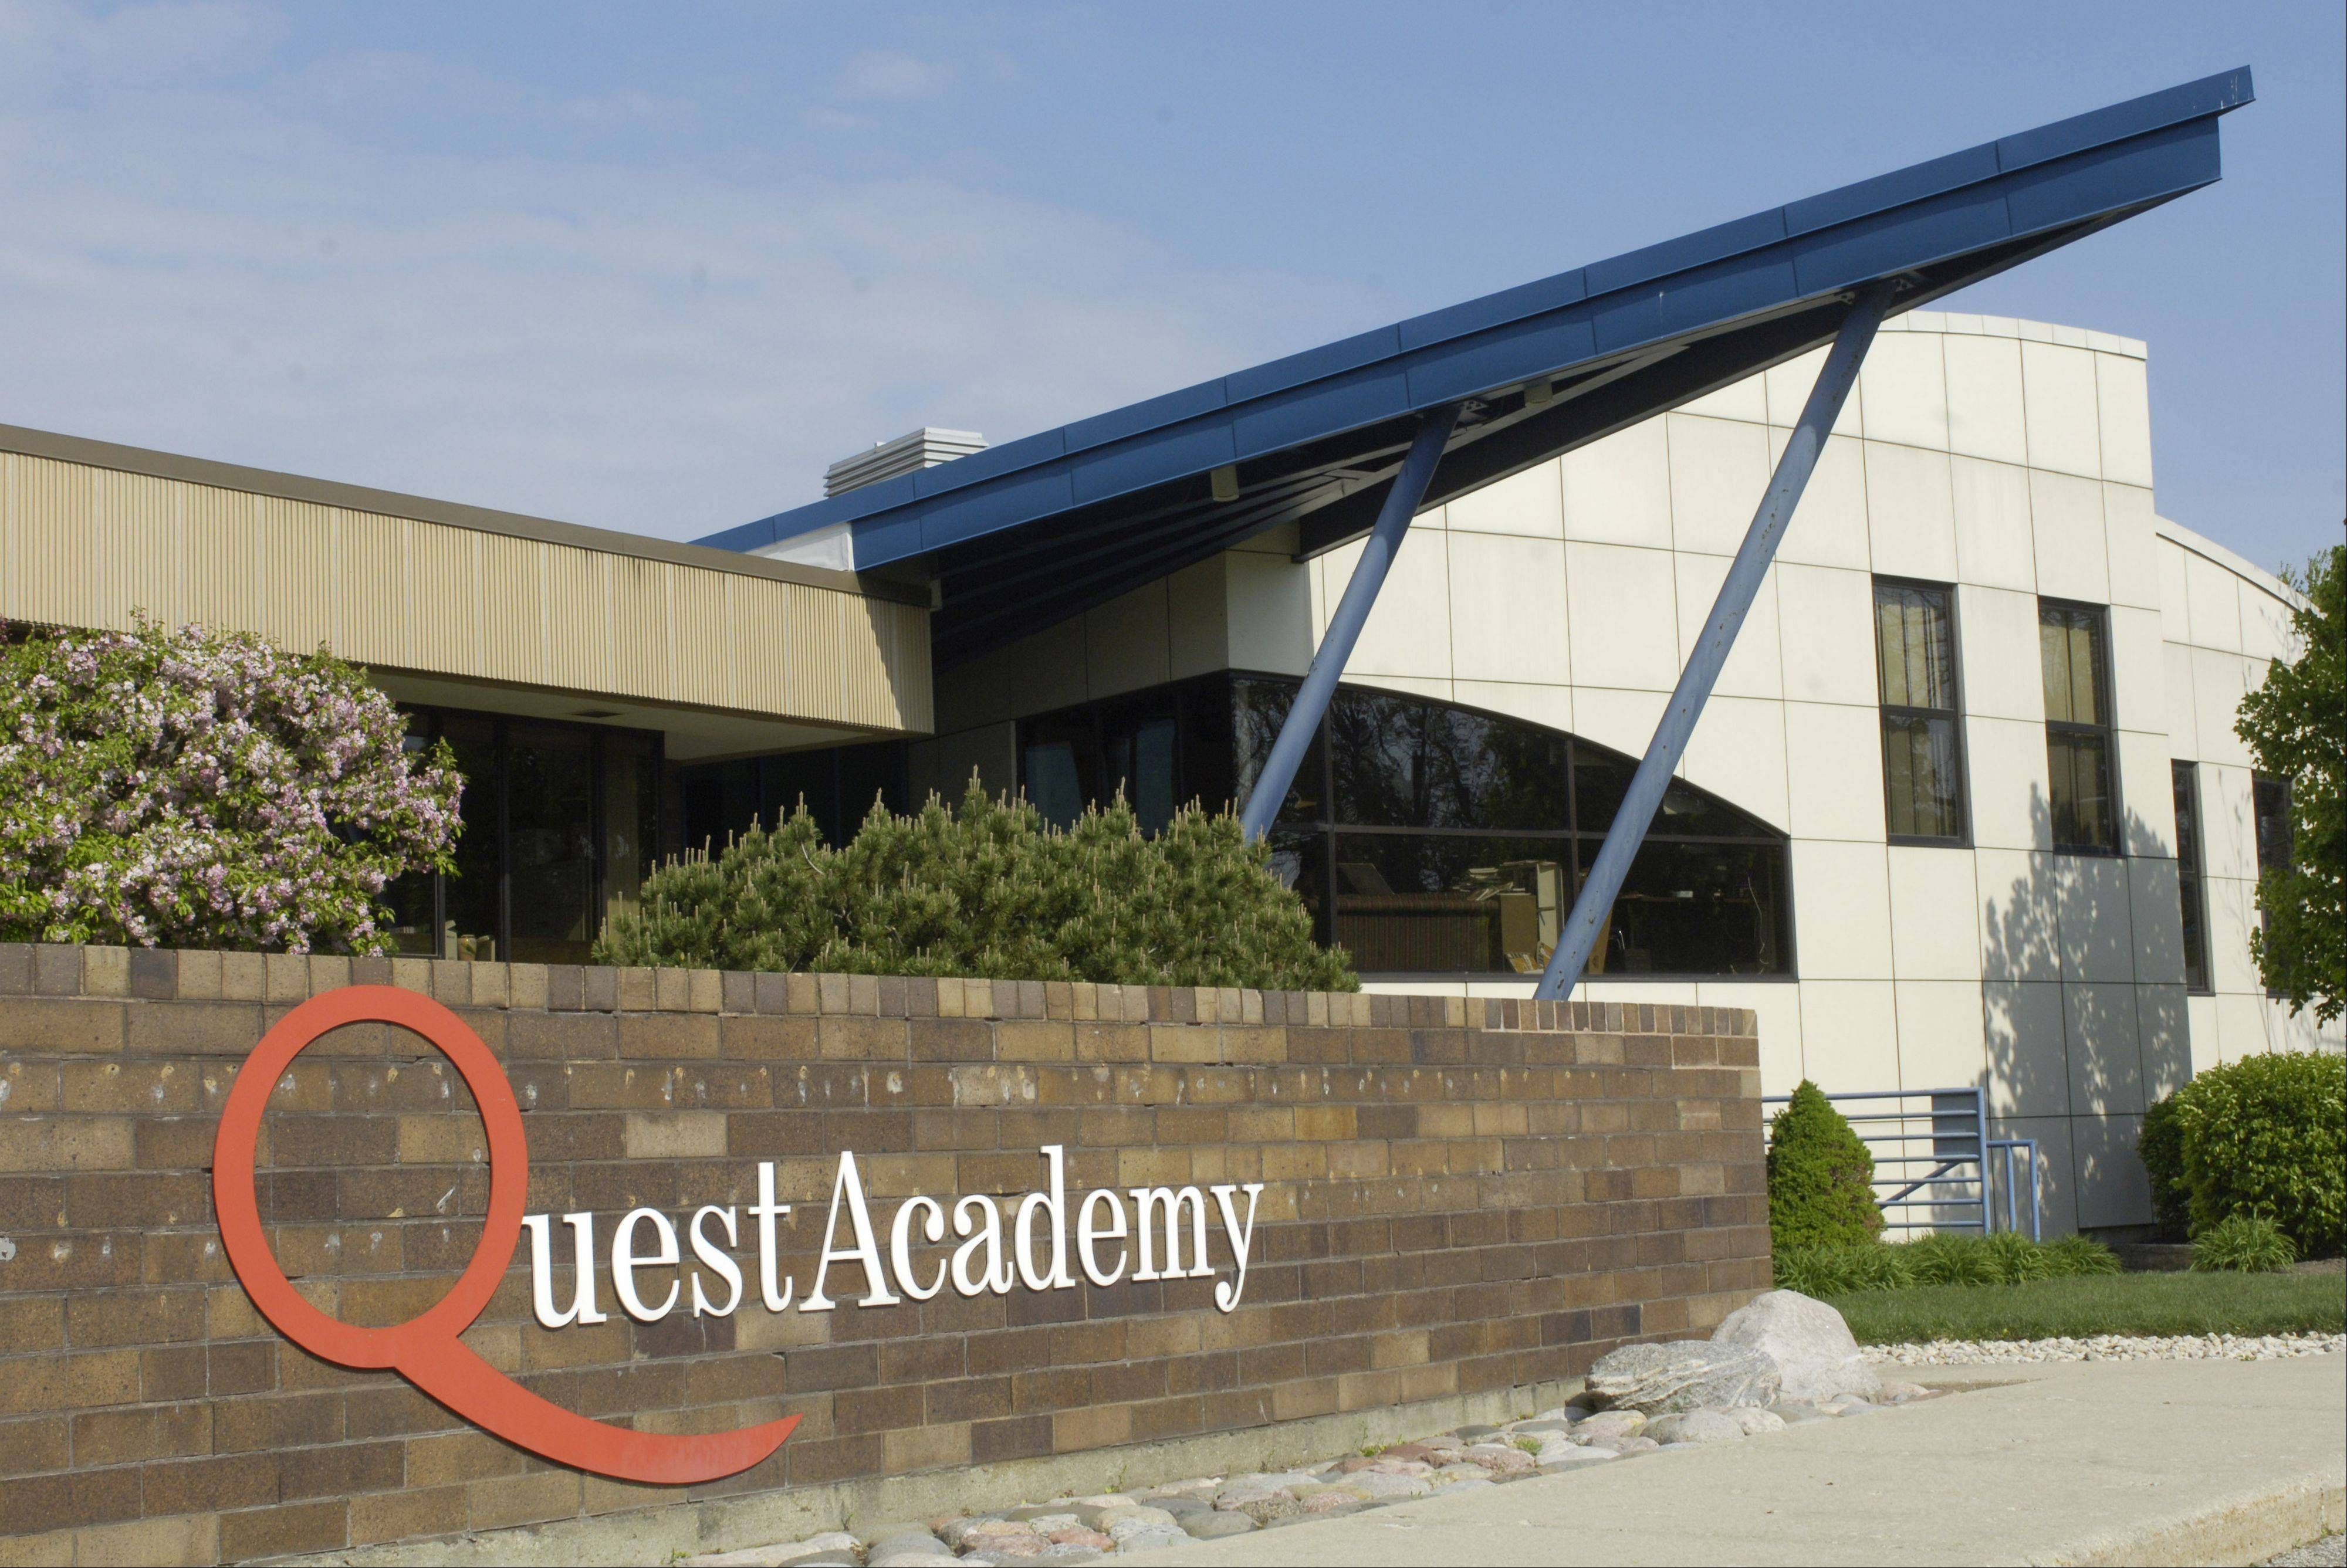 Quest Academy in Palatine is positioning itself for an expansion. The private school for gifted children is set to buy the adjacent shopping center and wants to build an athletic field on another nearby site.